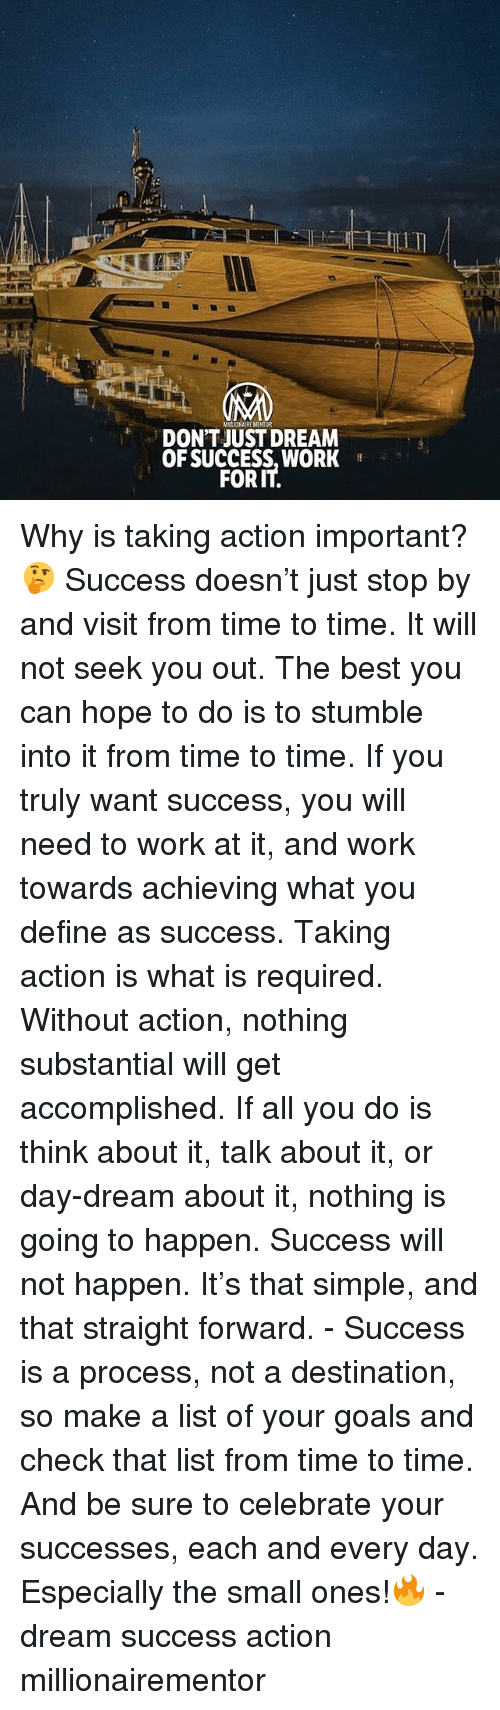 Goals, Memes, and Work: MILIONAIRE MENTOR  DON'T JUST DREAM  OF SUCCESS,WORK  FORIT Why is taking action important? 🤔 Success doesn't just stop by and visit from time to time. It will not seek you out. The best you can hope to do is to stumble into it from time to time. If you truly want success, you will need to work at it, and work towards achieving what you define as success. Taking action is what is required. Without action, nothing substantial will get accomplished. If all you do is think about it, talk about it, or day-dream about it, nothing is going to happen. Success will not happen. It's that simple, and that straight forward. - Success is a process, not a destination, so make a list of your goals and check that list from time to time. And be sure to celebrate your successes, each and every day. Especially the small ones!🔥 - dream success action millionairementor